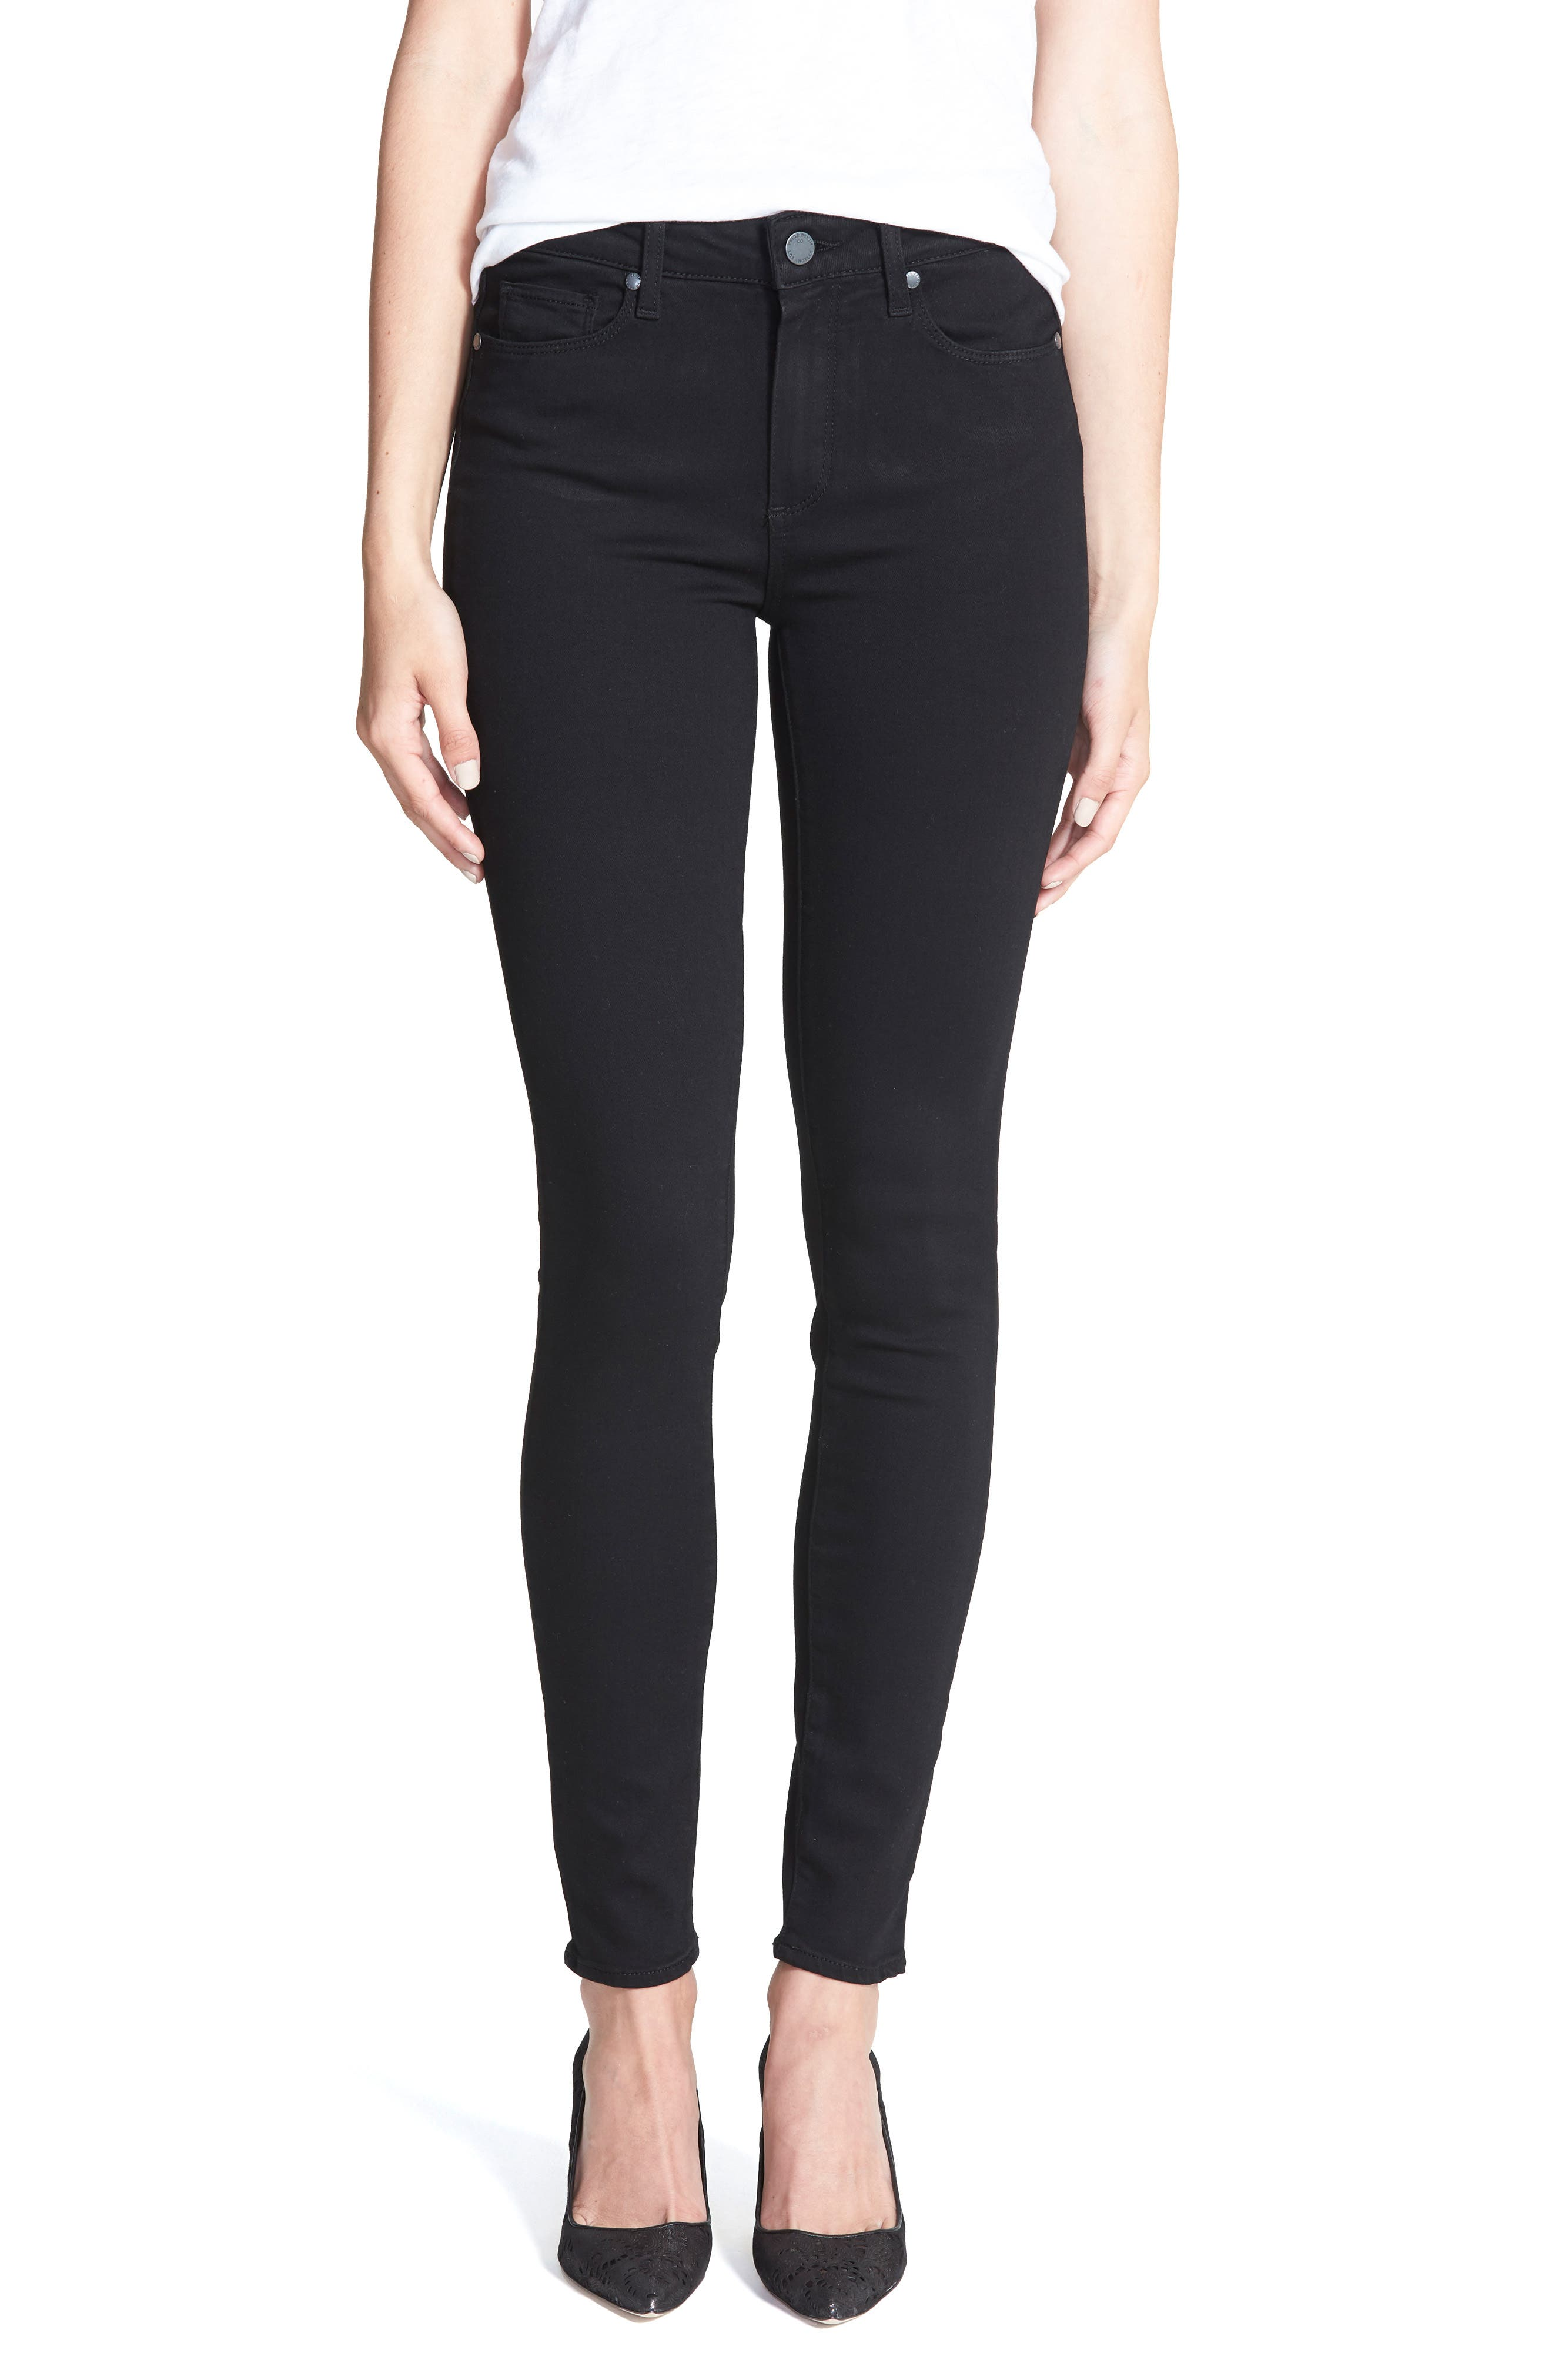 Women's Paige Transcend - Hoxton High Waist Ultra Skinny Stretch Jeans